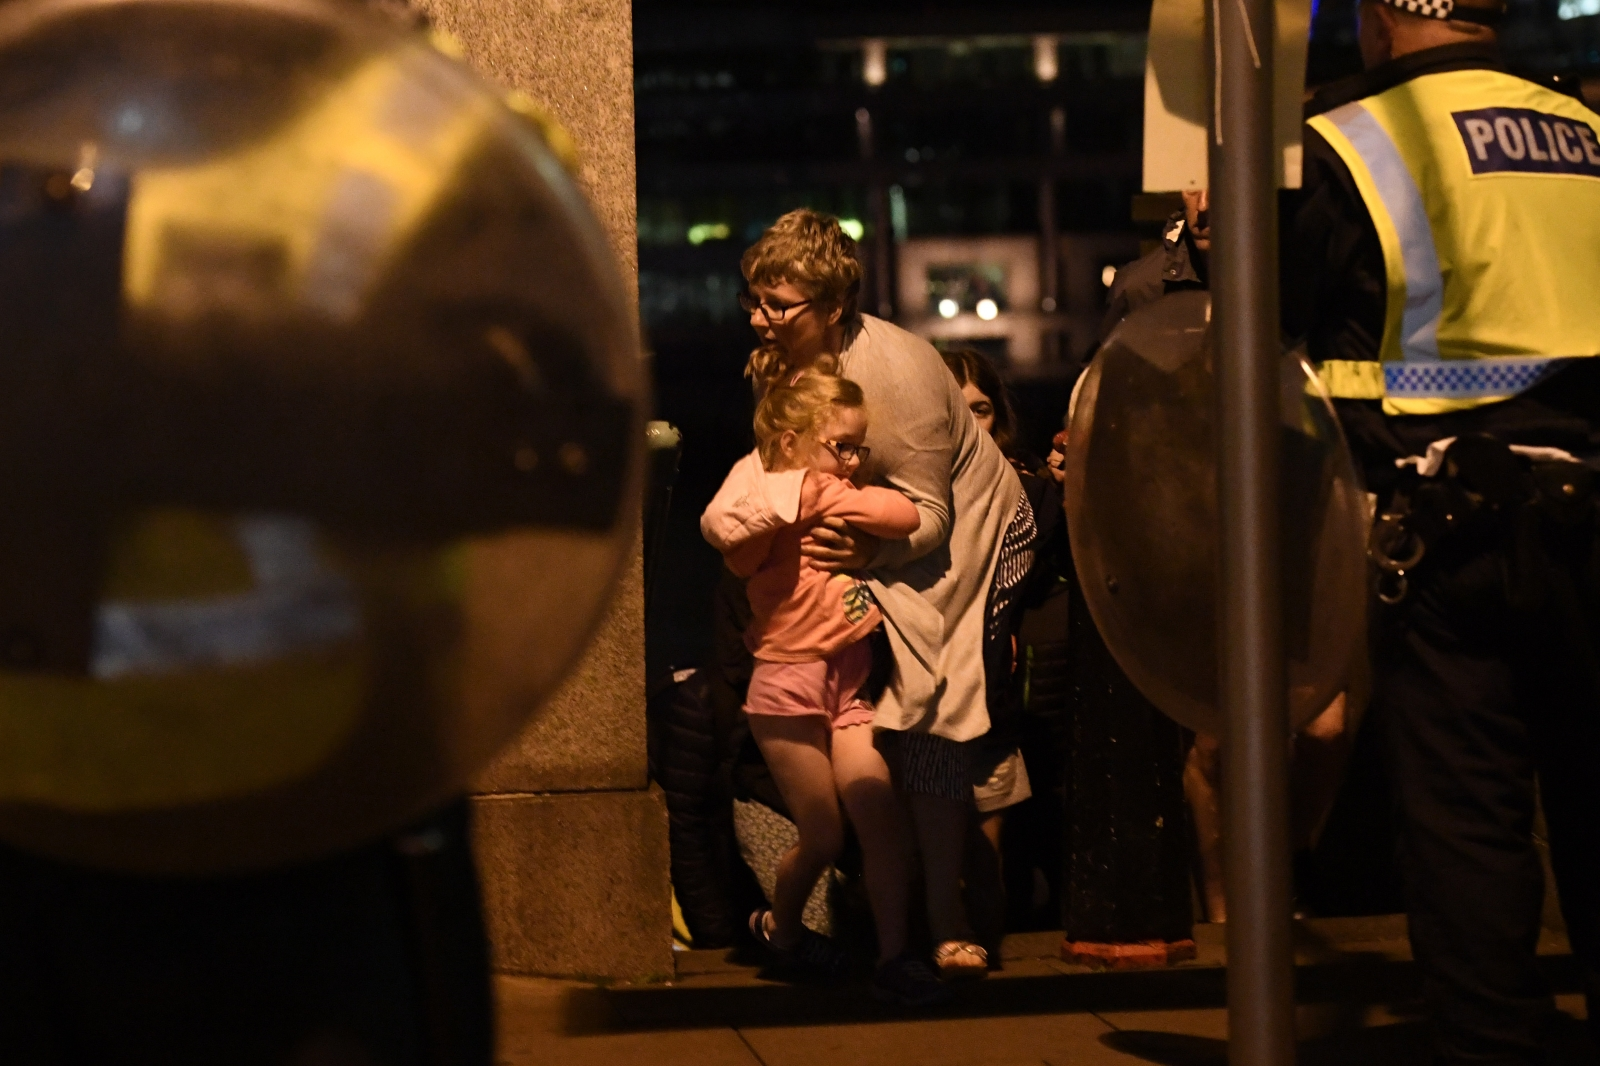 london bridge attack Britain's resolve to stand firm against terrorism is stronger than ever, prime minister theresa may said sunday, a year since a deadly vehicle-and-knife attack on london bridge.